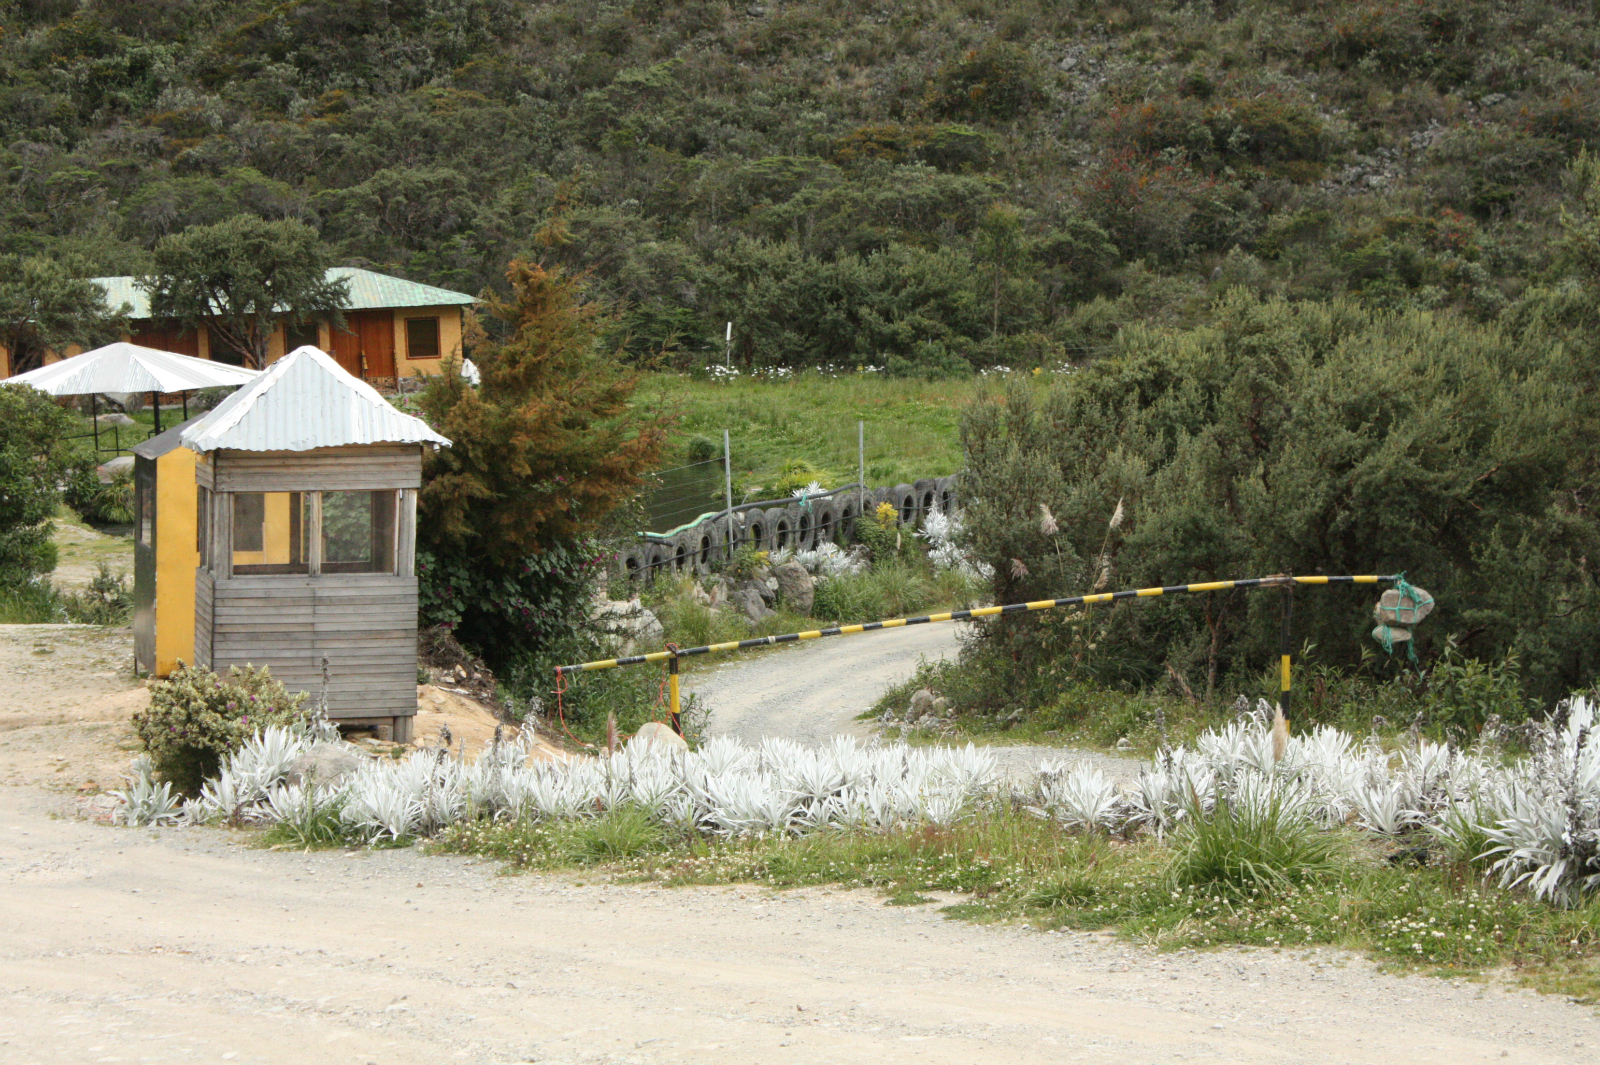 Both the company and the community have control over barriers that control access to one of the two roads to Río Blanco. (Image: Andrés Bermúdez Liévano)